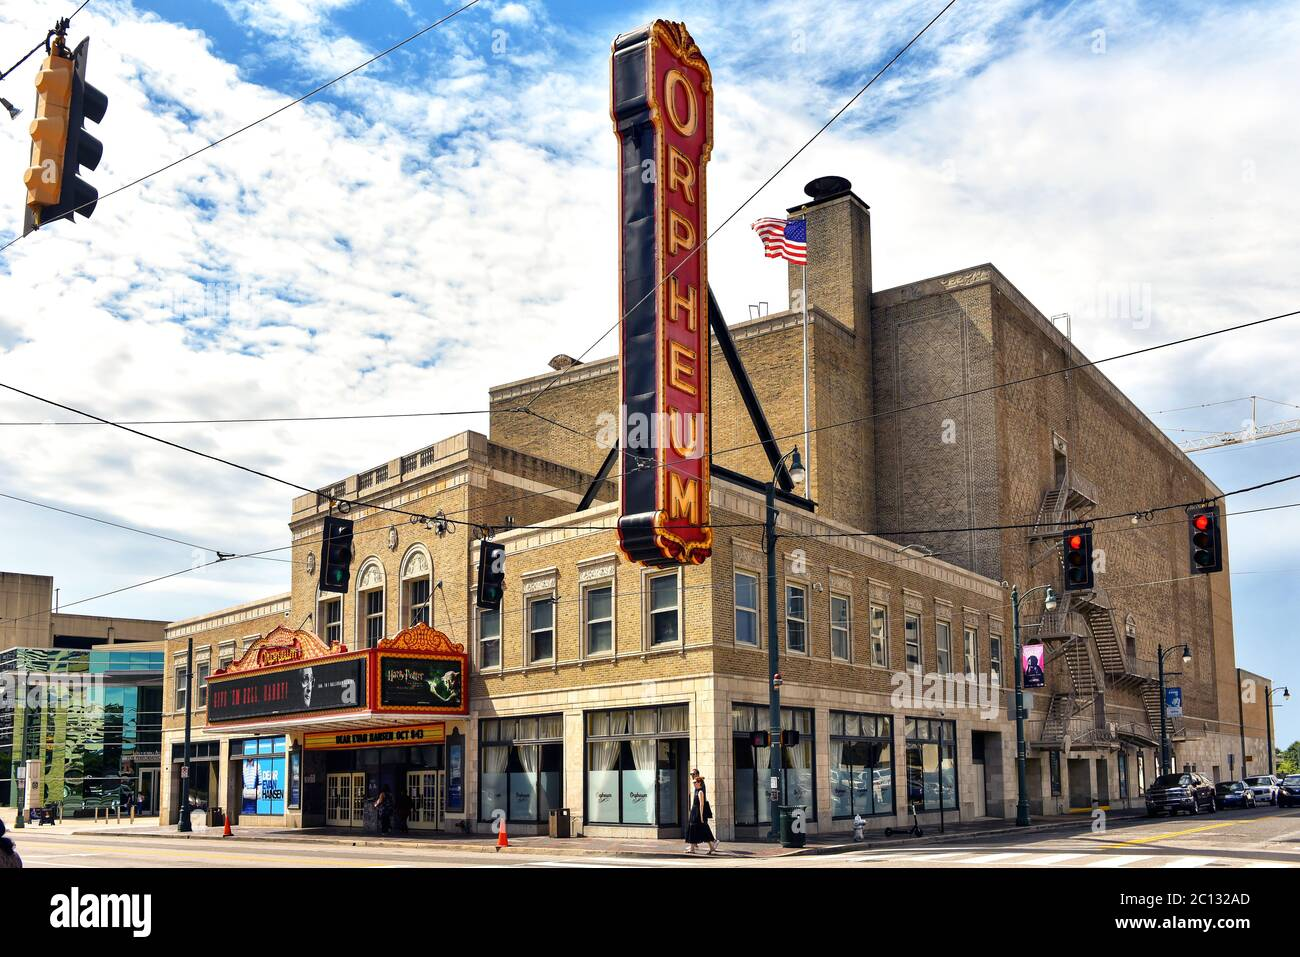 Memphis, TN, USA - September 24, 2019: The Orpheum Theater at South Main and Beale Streets was built in 1928 and is on the National Register of Histor Stock Photo